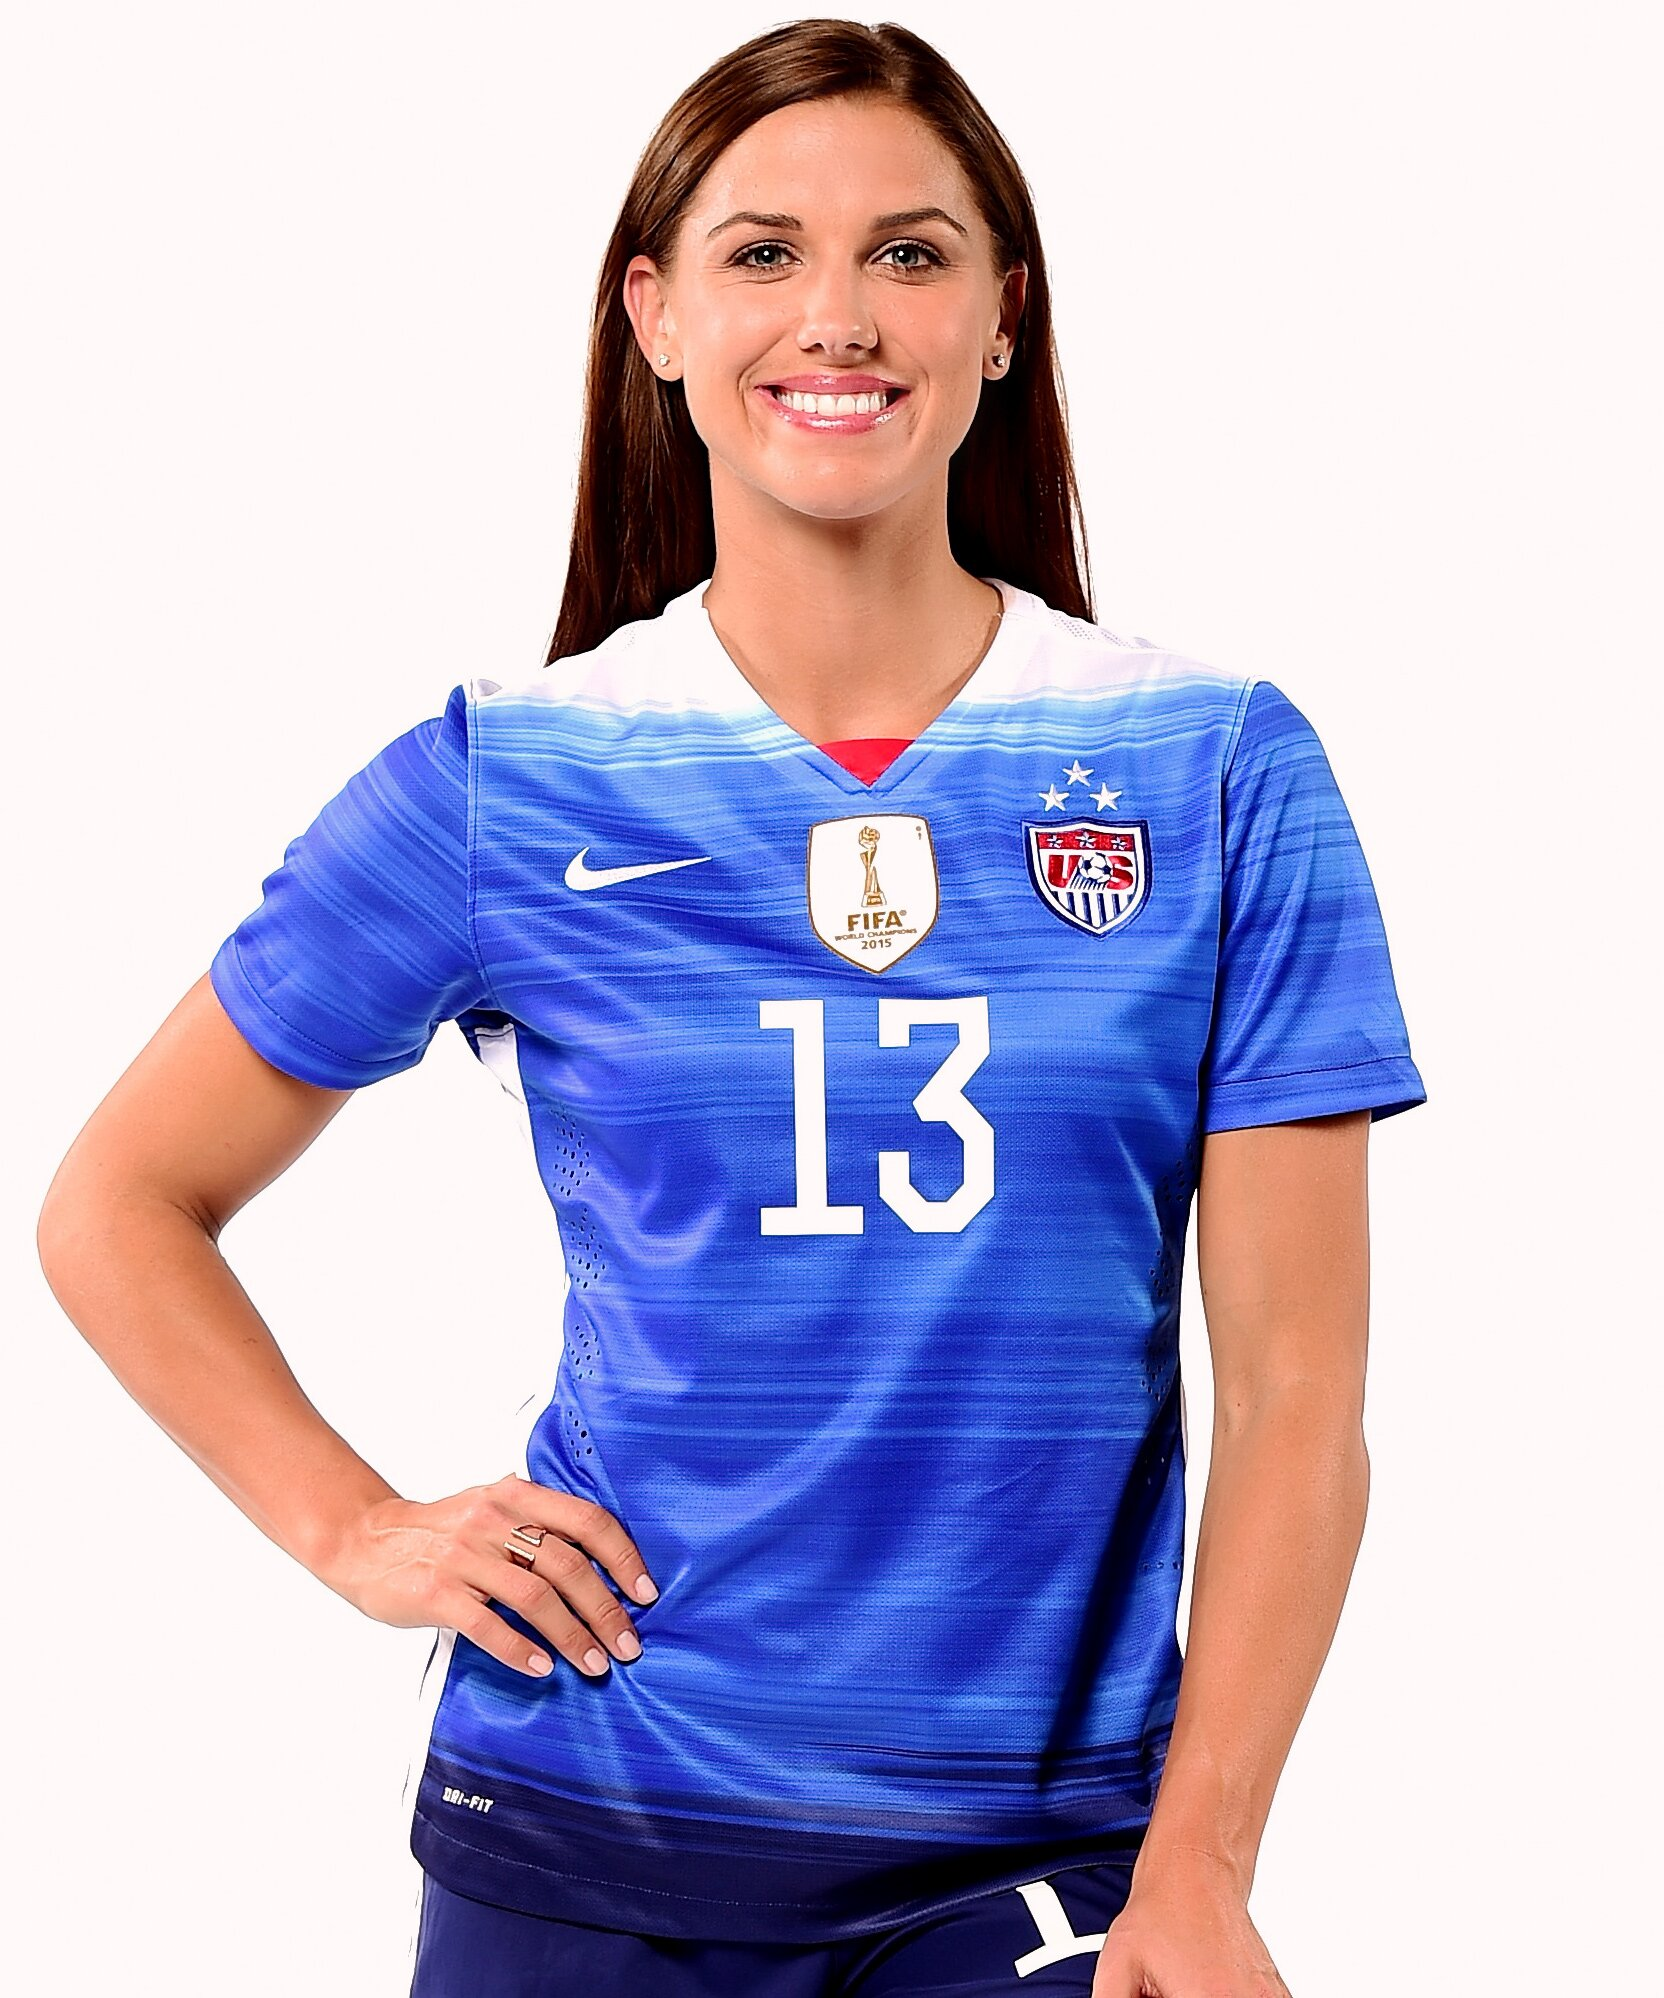 huge discount 095db cdfd8 Reasons Why Alex Morgan is the Role Model | InStyle.com